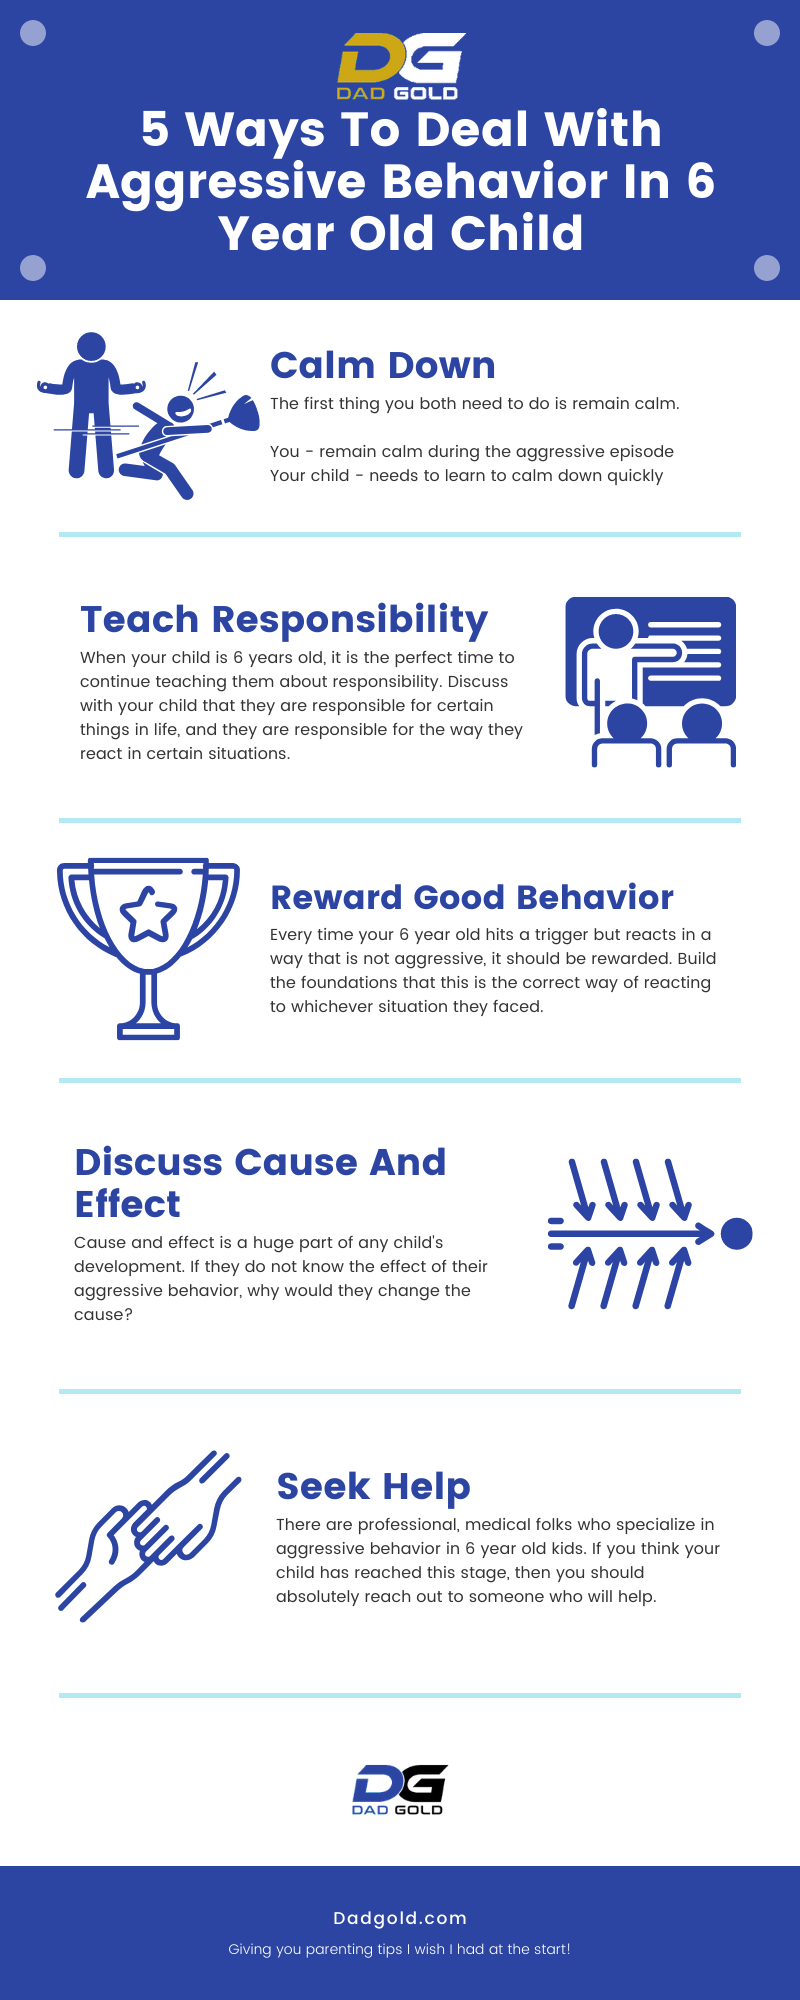 5 Ways To Deal With Aggressive Behavior In 6 Year Old Child Infographic